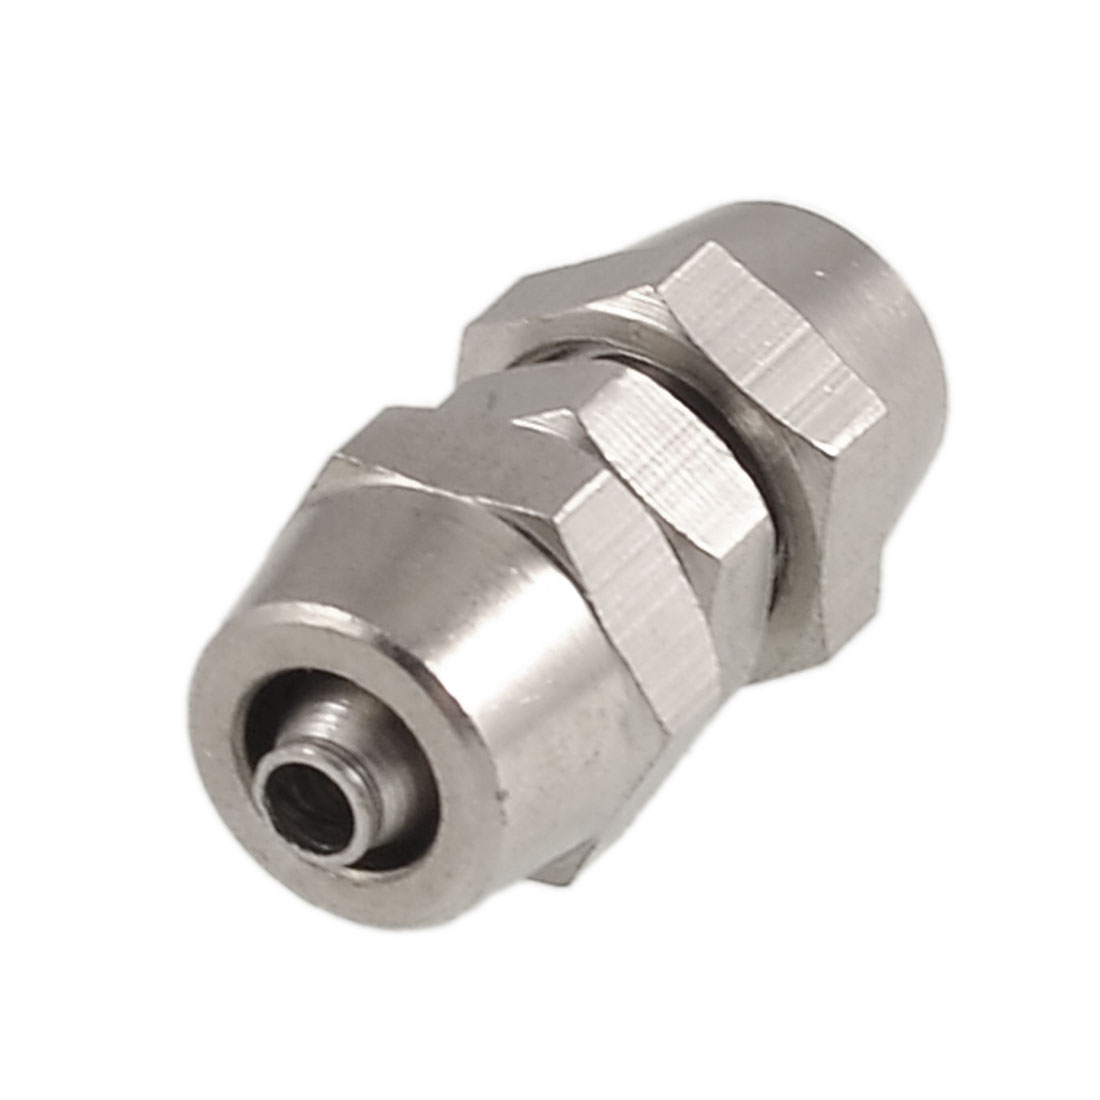 3.5mm x 6mm Pneumatic Air Tube Straight Quick Coupler Connector Fitting